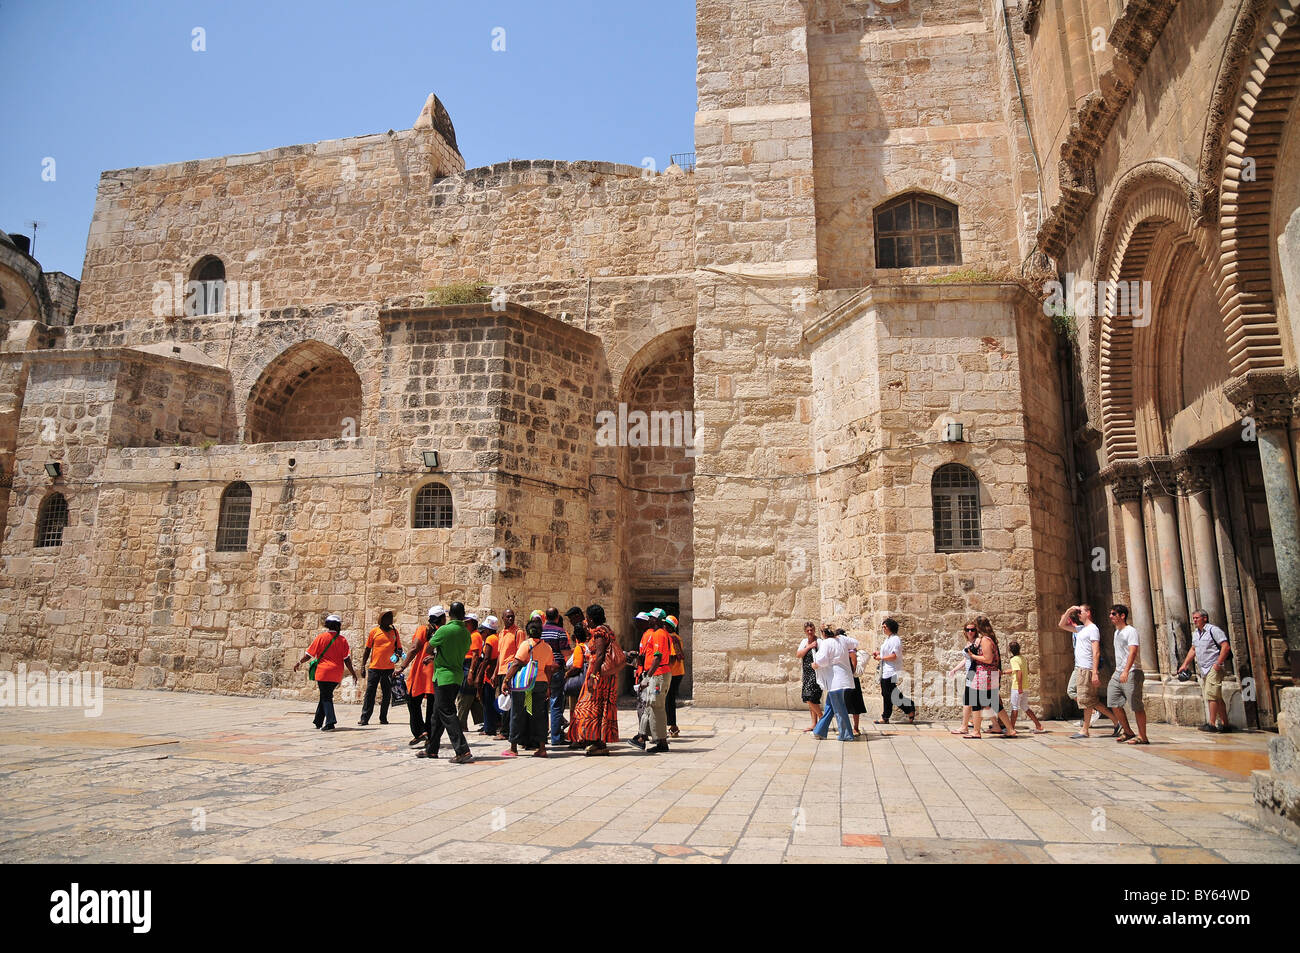 Israel, Jerusalem, Old City, Exterior of the church of the Holy Sepulchre, The main entrance - Stock Image